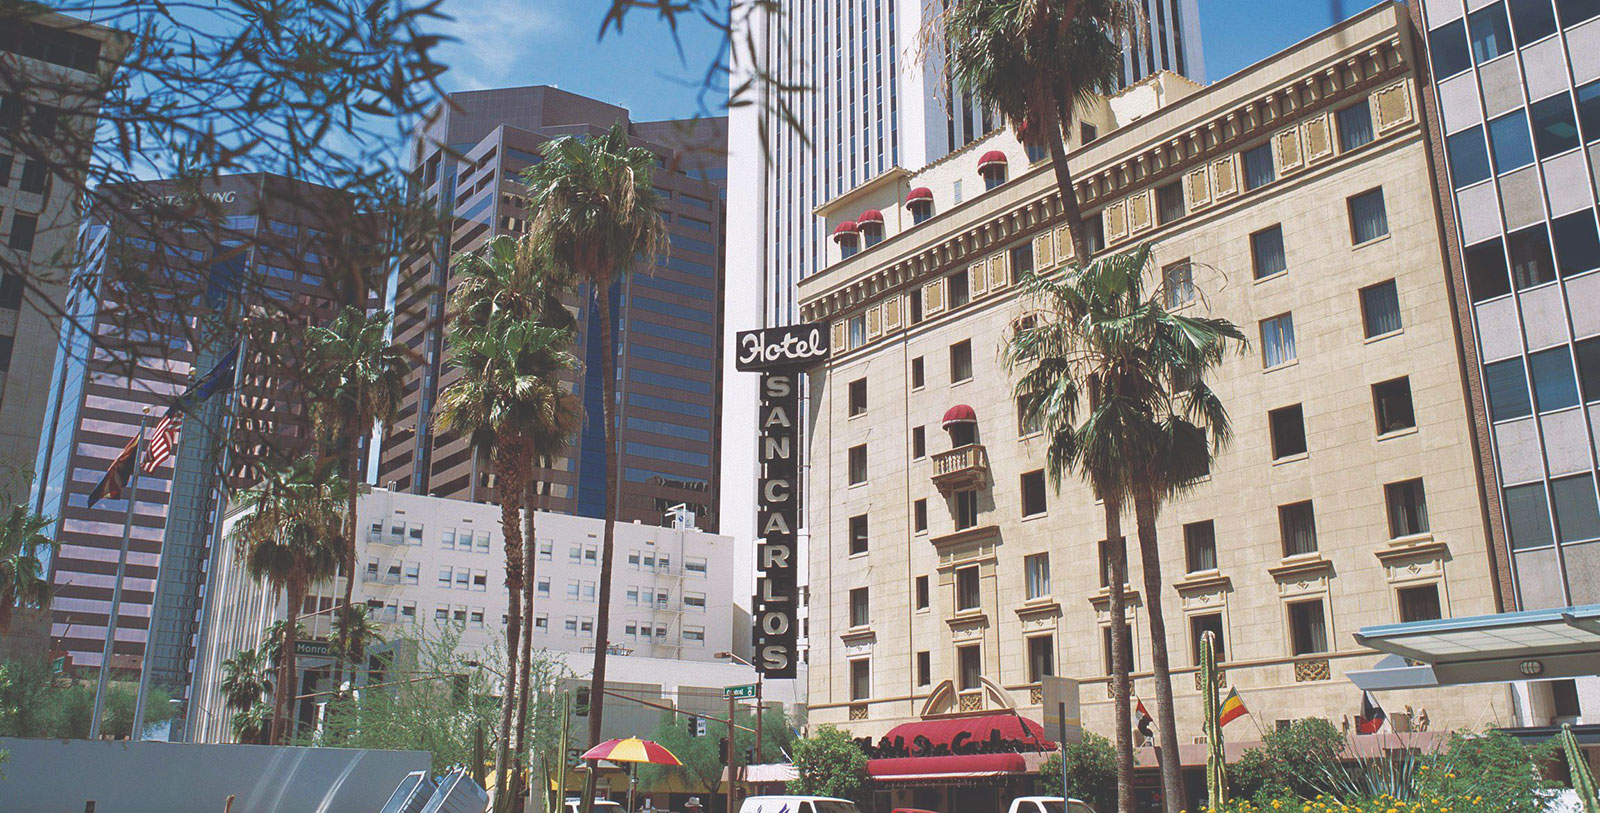 Image of Exterior, Hotel San Carlos in Phoenix Arizona, 1928, Member of Historic Hotels of America, Overview